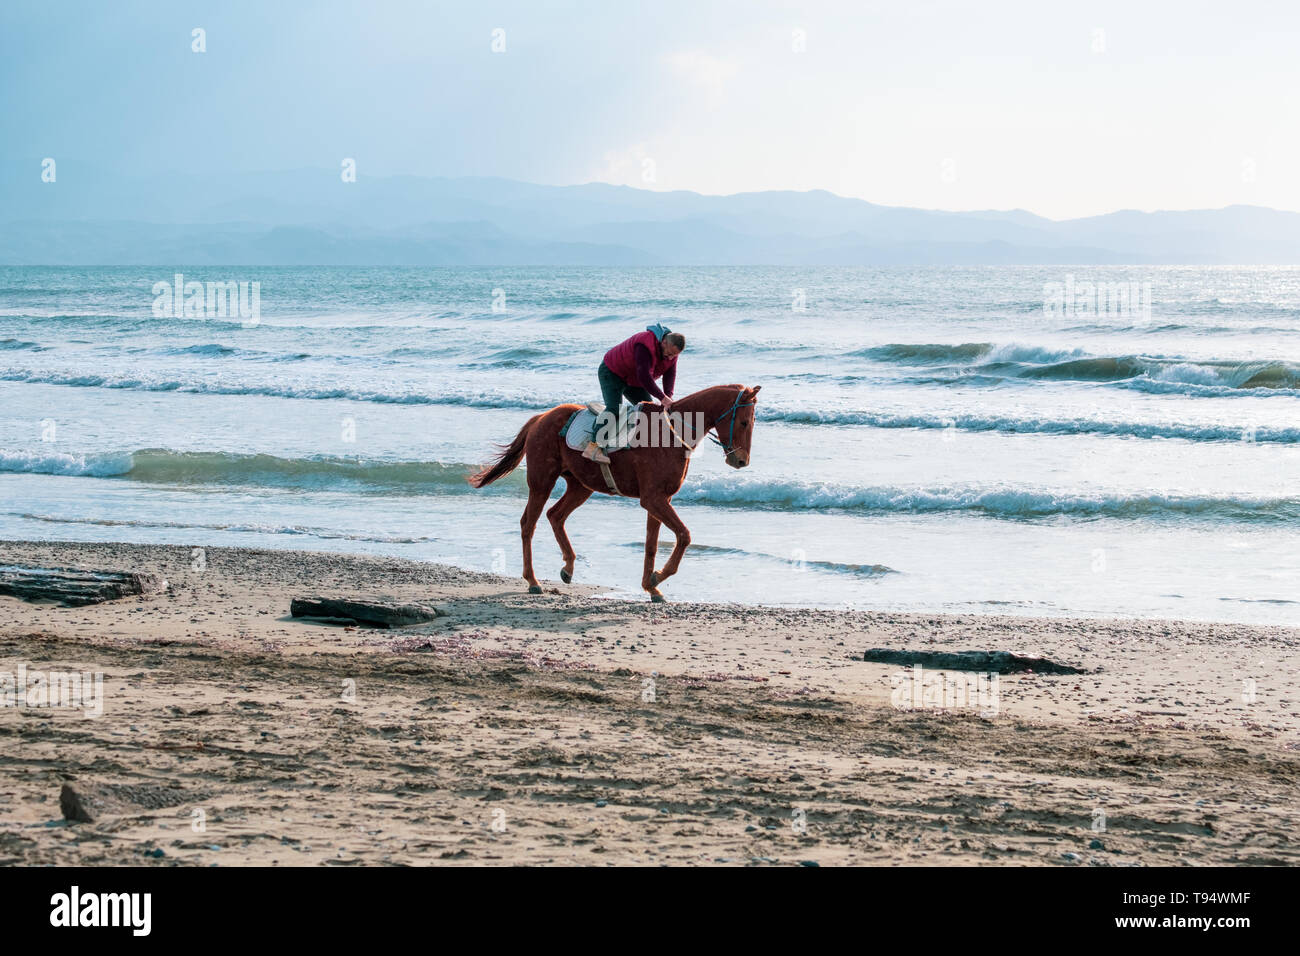 Ayia Eirini, Cyprus - 24 March, 2019: Man riding on a brown galloping horse on Ayia Erini beach in Cyprus against a rough sea - Stock Image